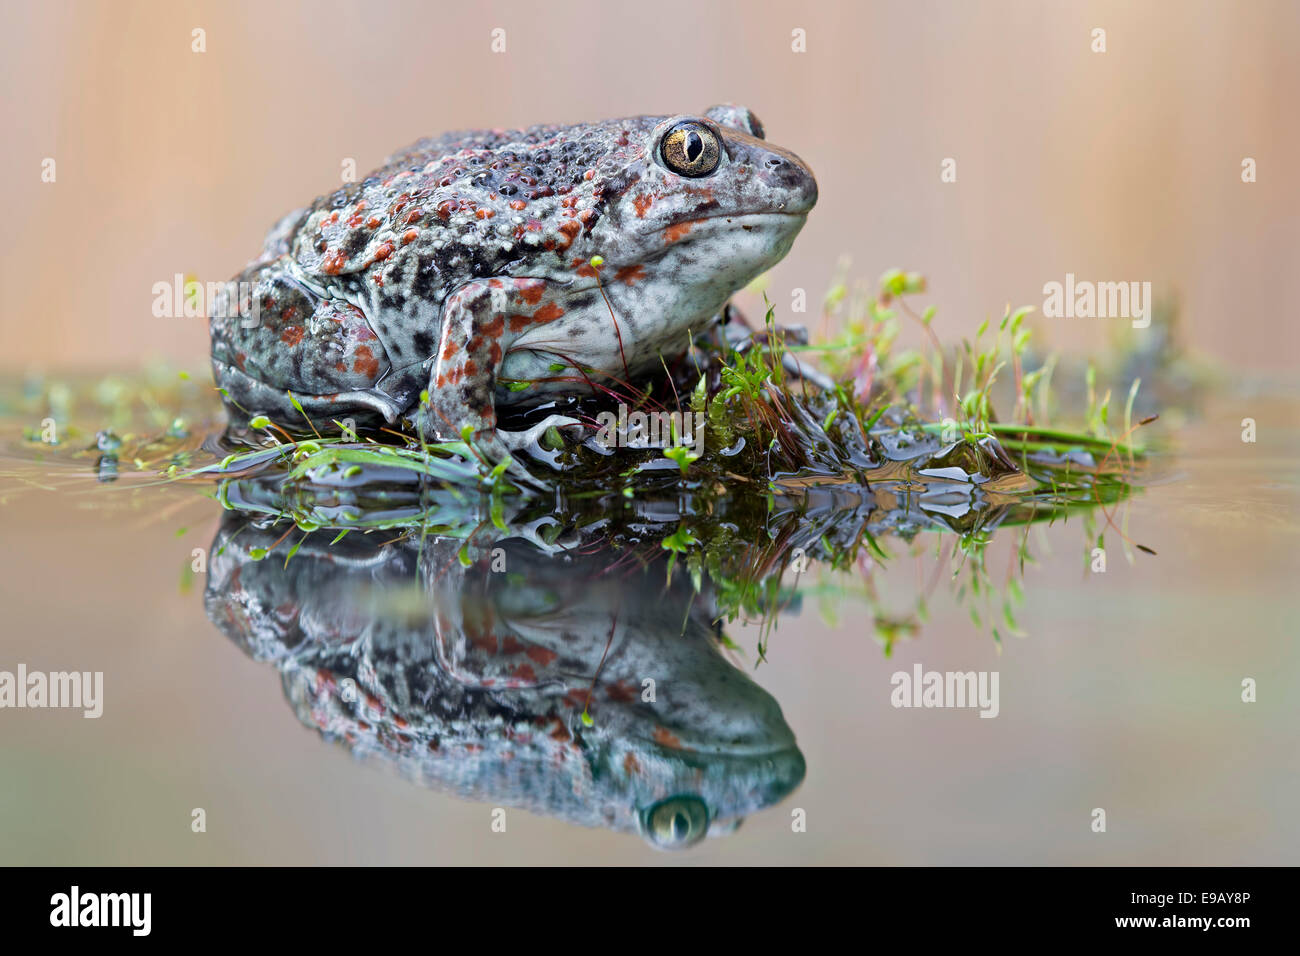 Spadefoot (Pelobates fuscus), reflection, seepage water, Middle Elbe, Saxony-Anhalt, Germany - Stock Image